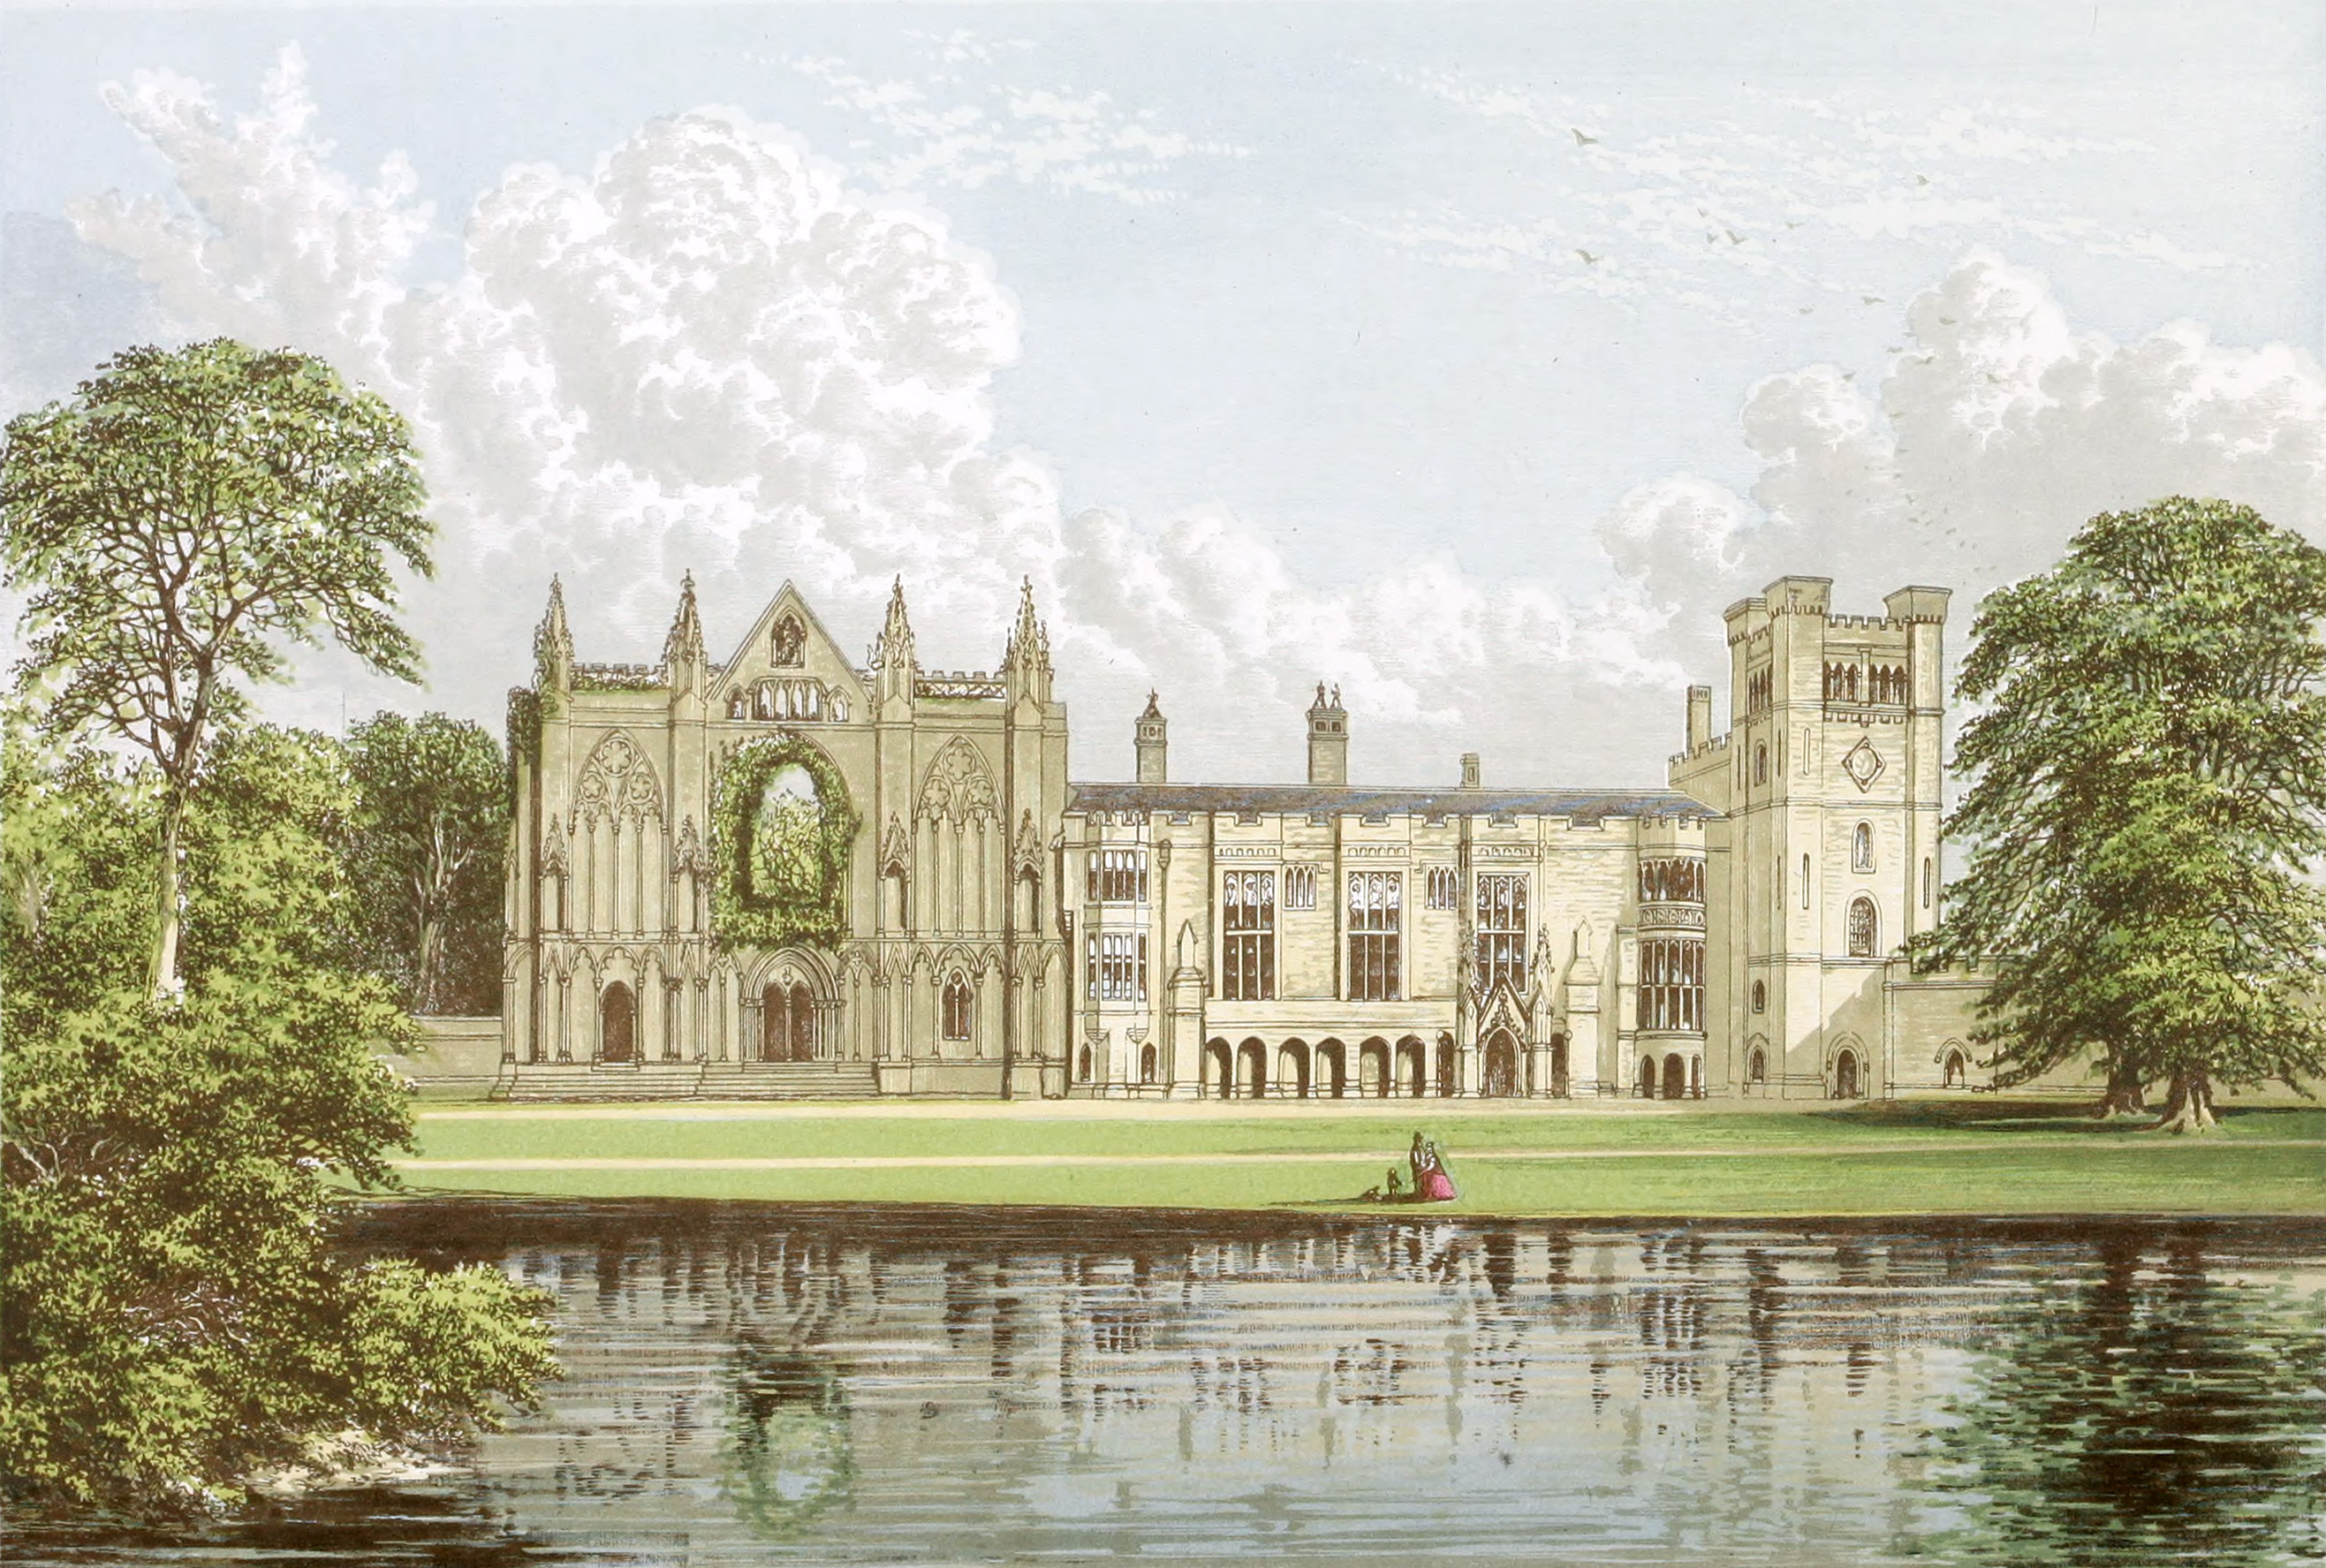 Newstead Abbey